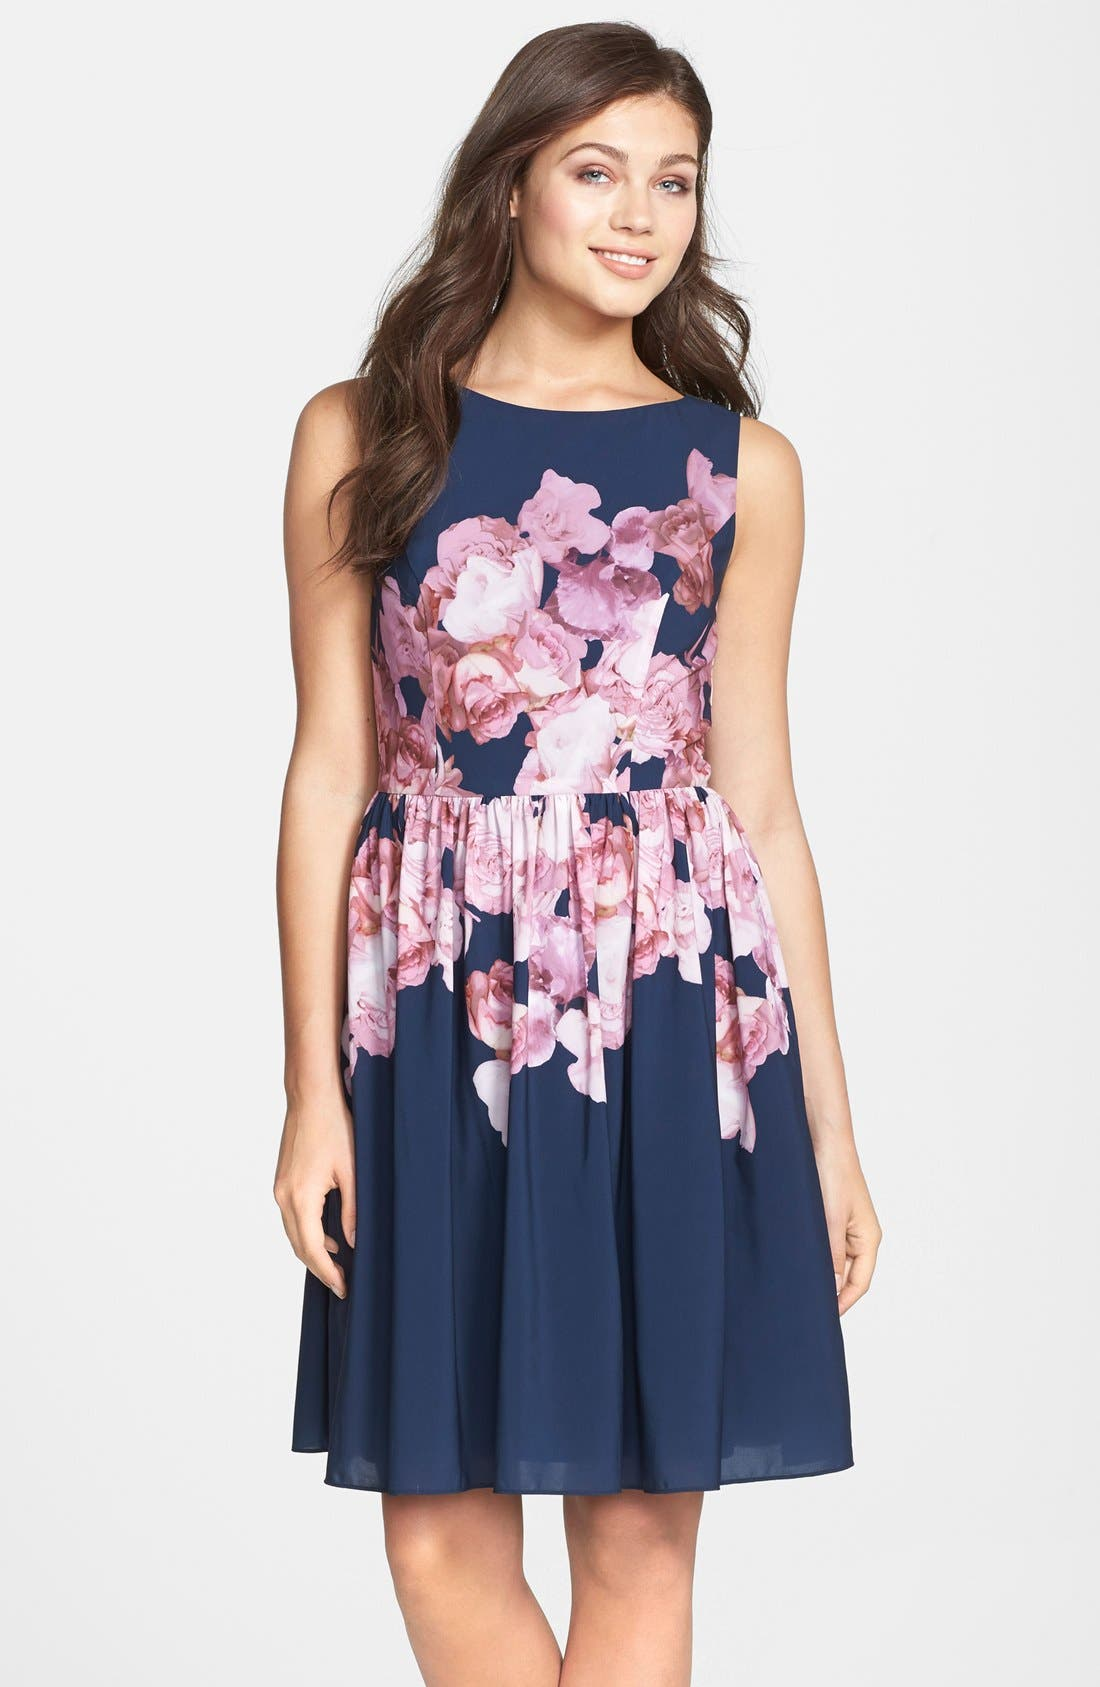 Alternate Image 1 Selected - Adrianna Papell Floral Print Chiffon Fit & Flare Dress (Regular & Petite)